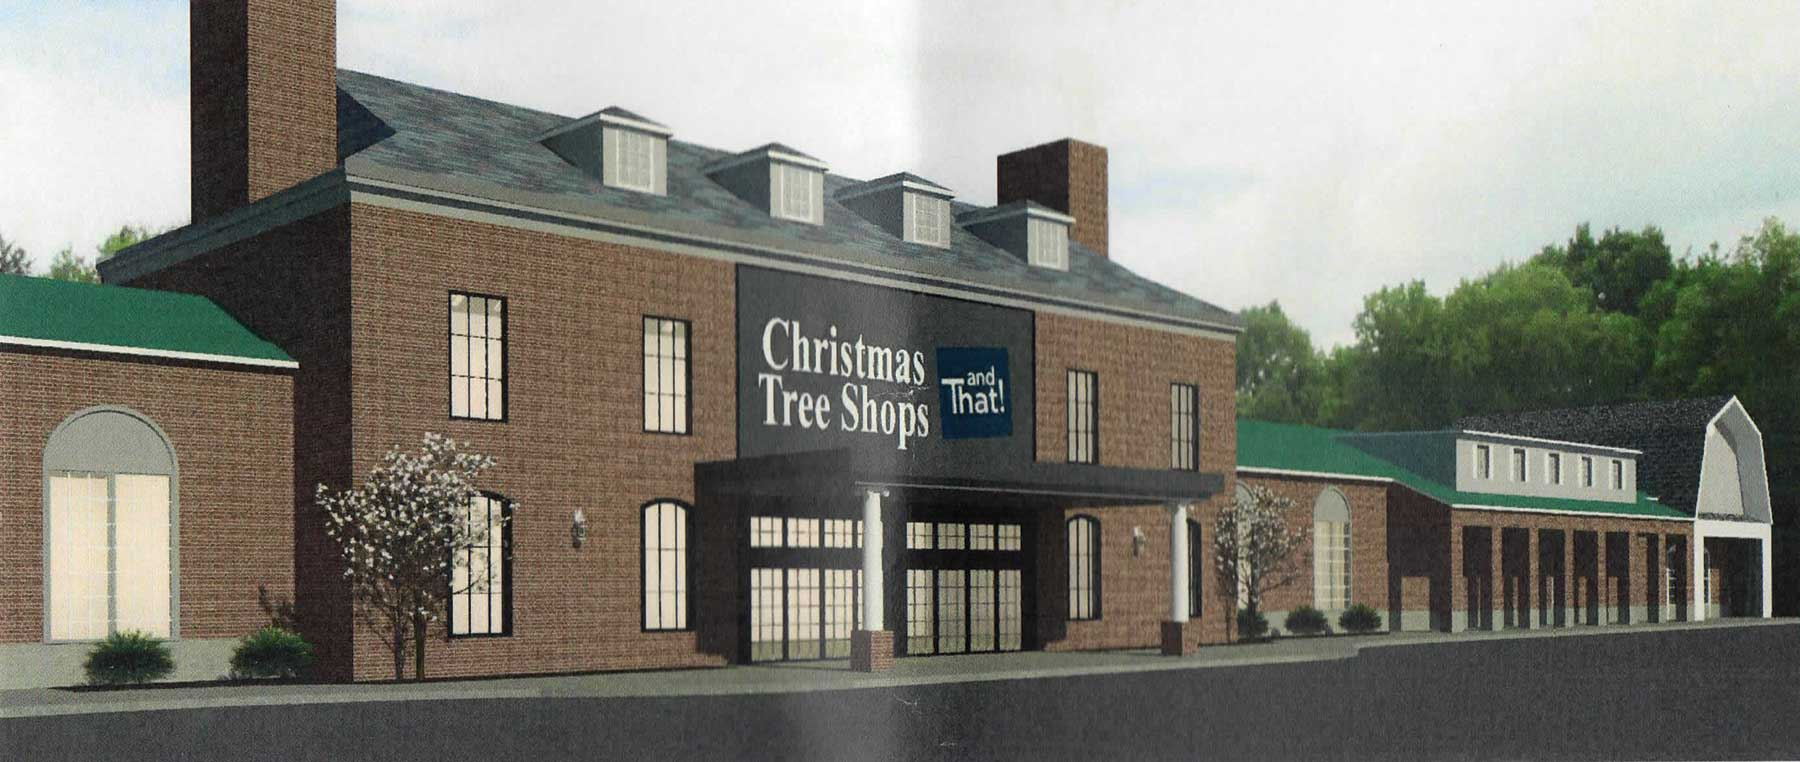 New Look For Christmas Tree Shops